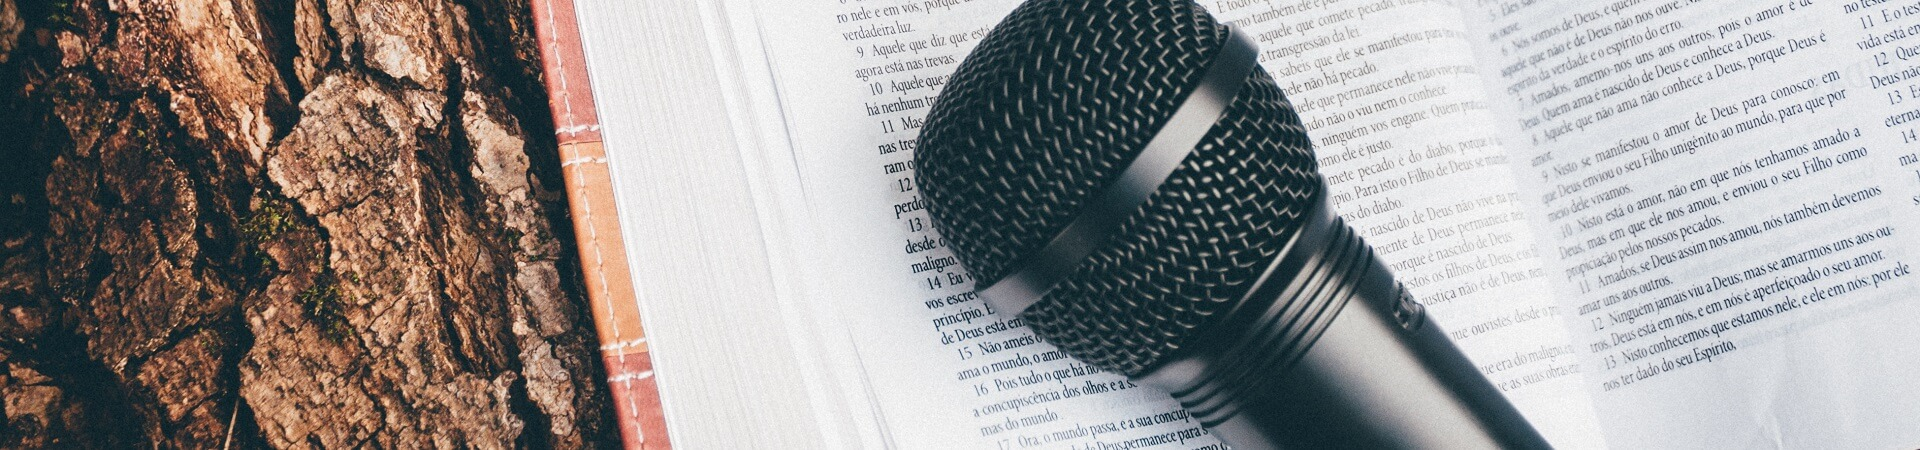 A black microphone rests atop an open book.